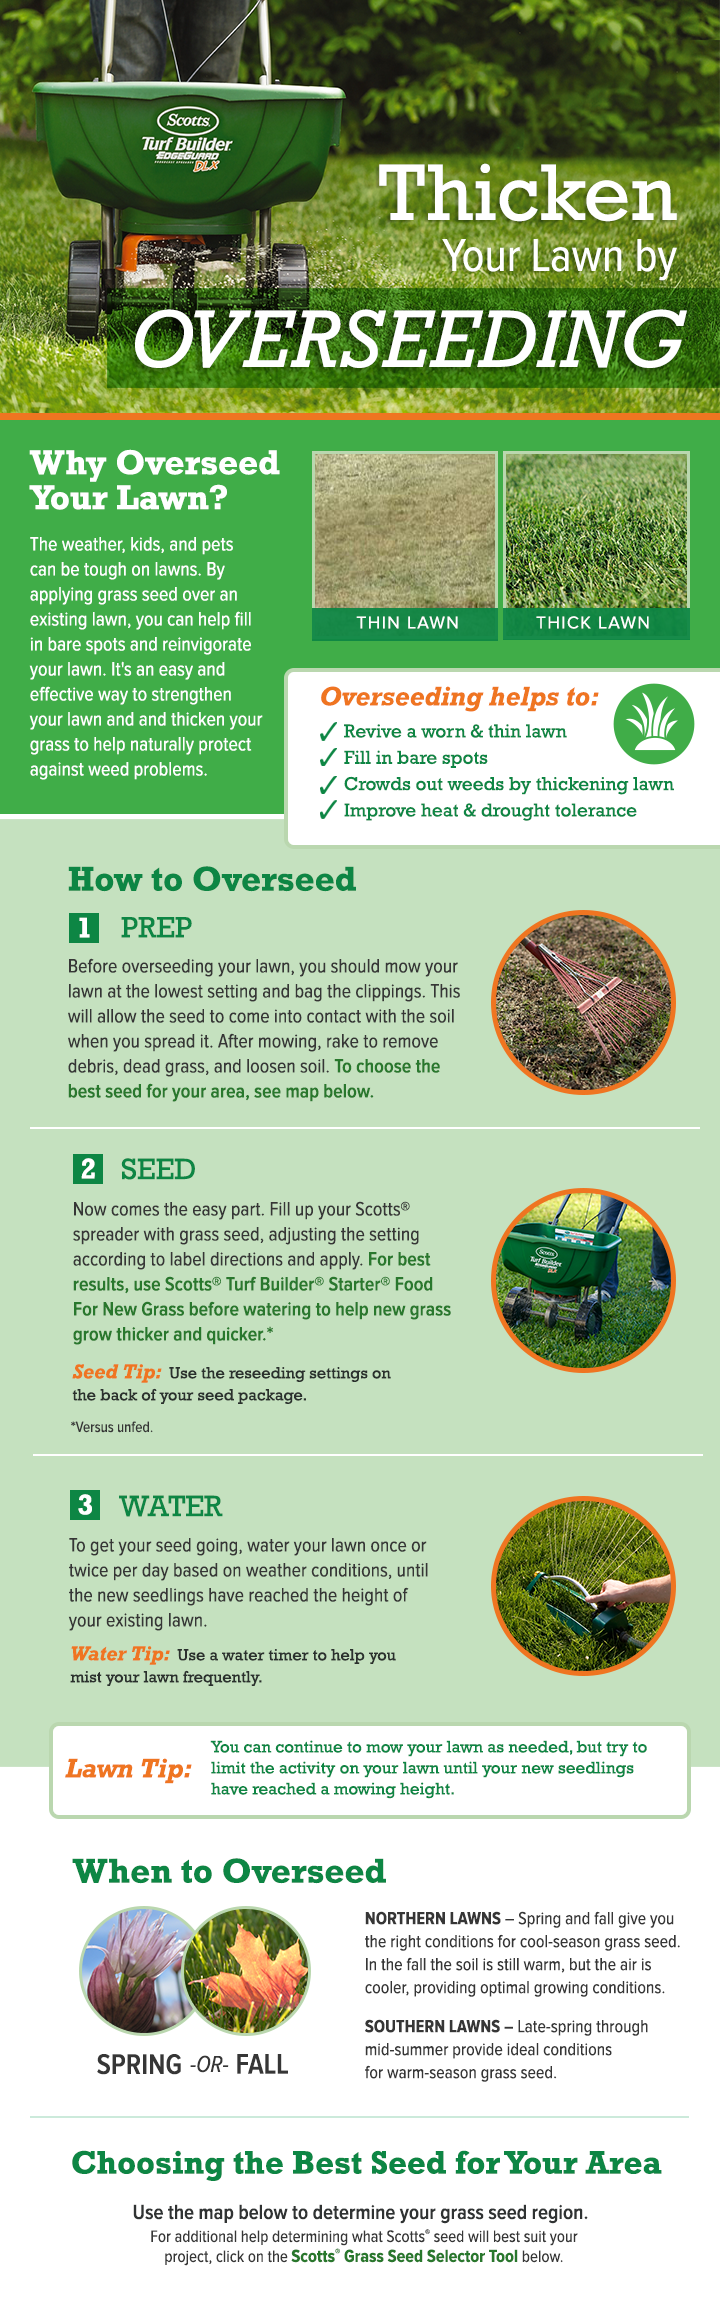 Best way to plant grass seed - The Weather Kids And Pets Can Be Tough On Lawns Lack Of Water Too Much Heat Wear Tear And Other Problems Can Make It Look Worn And Thin